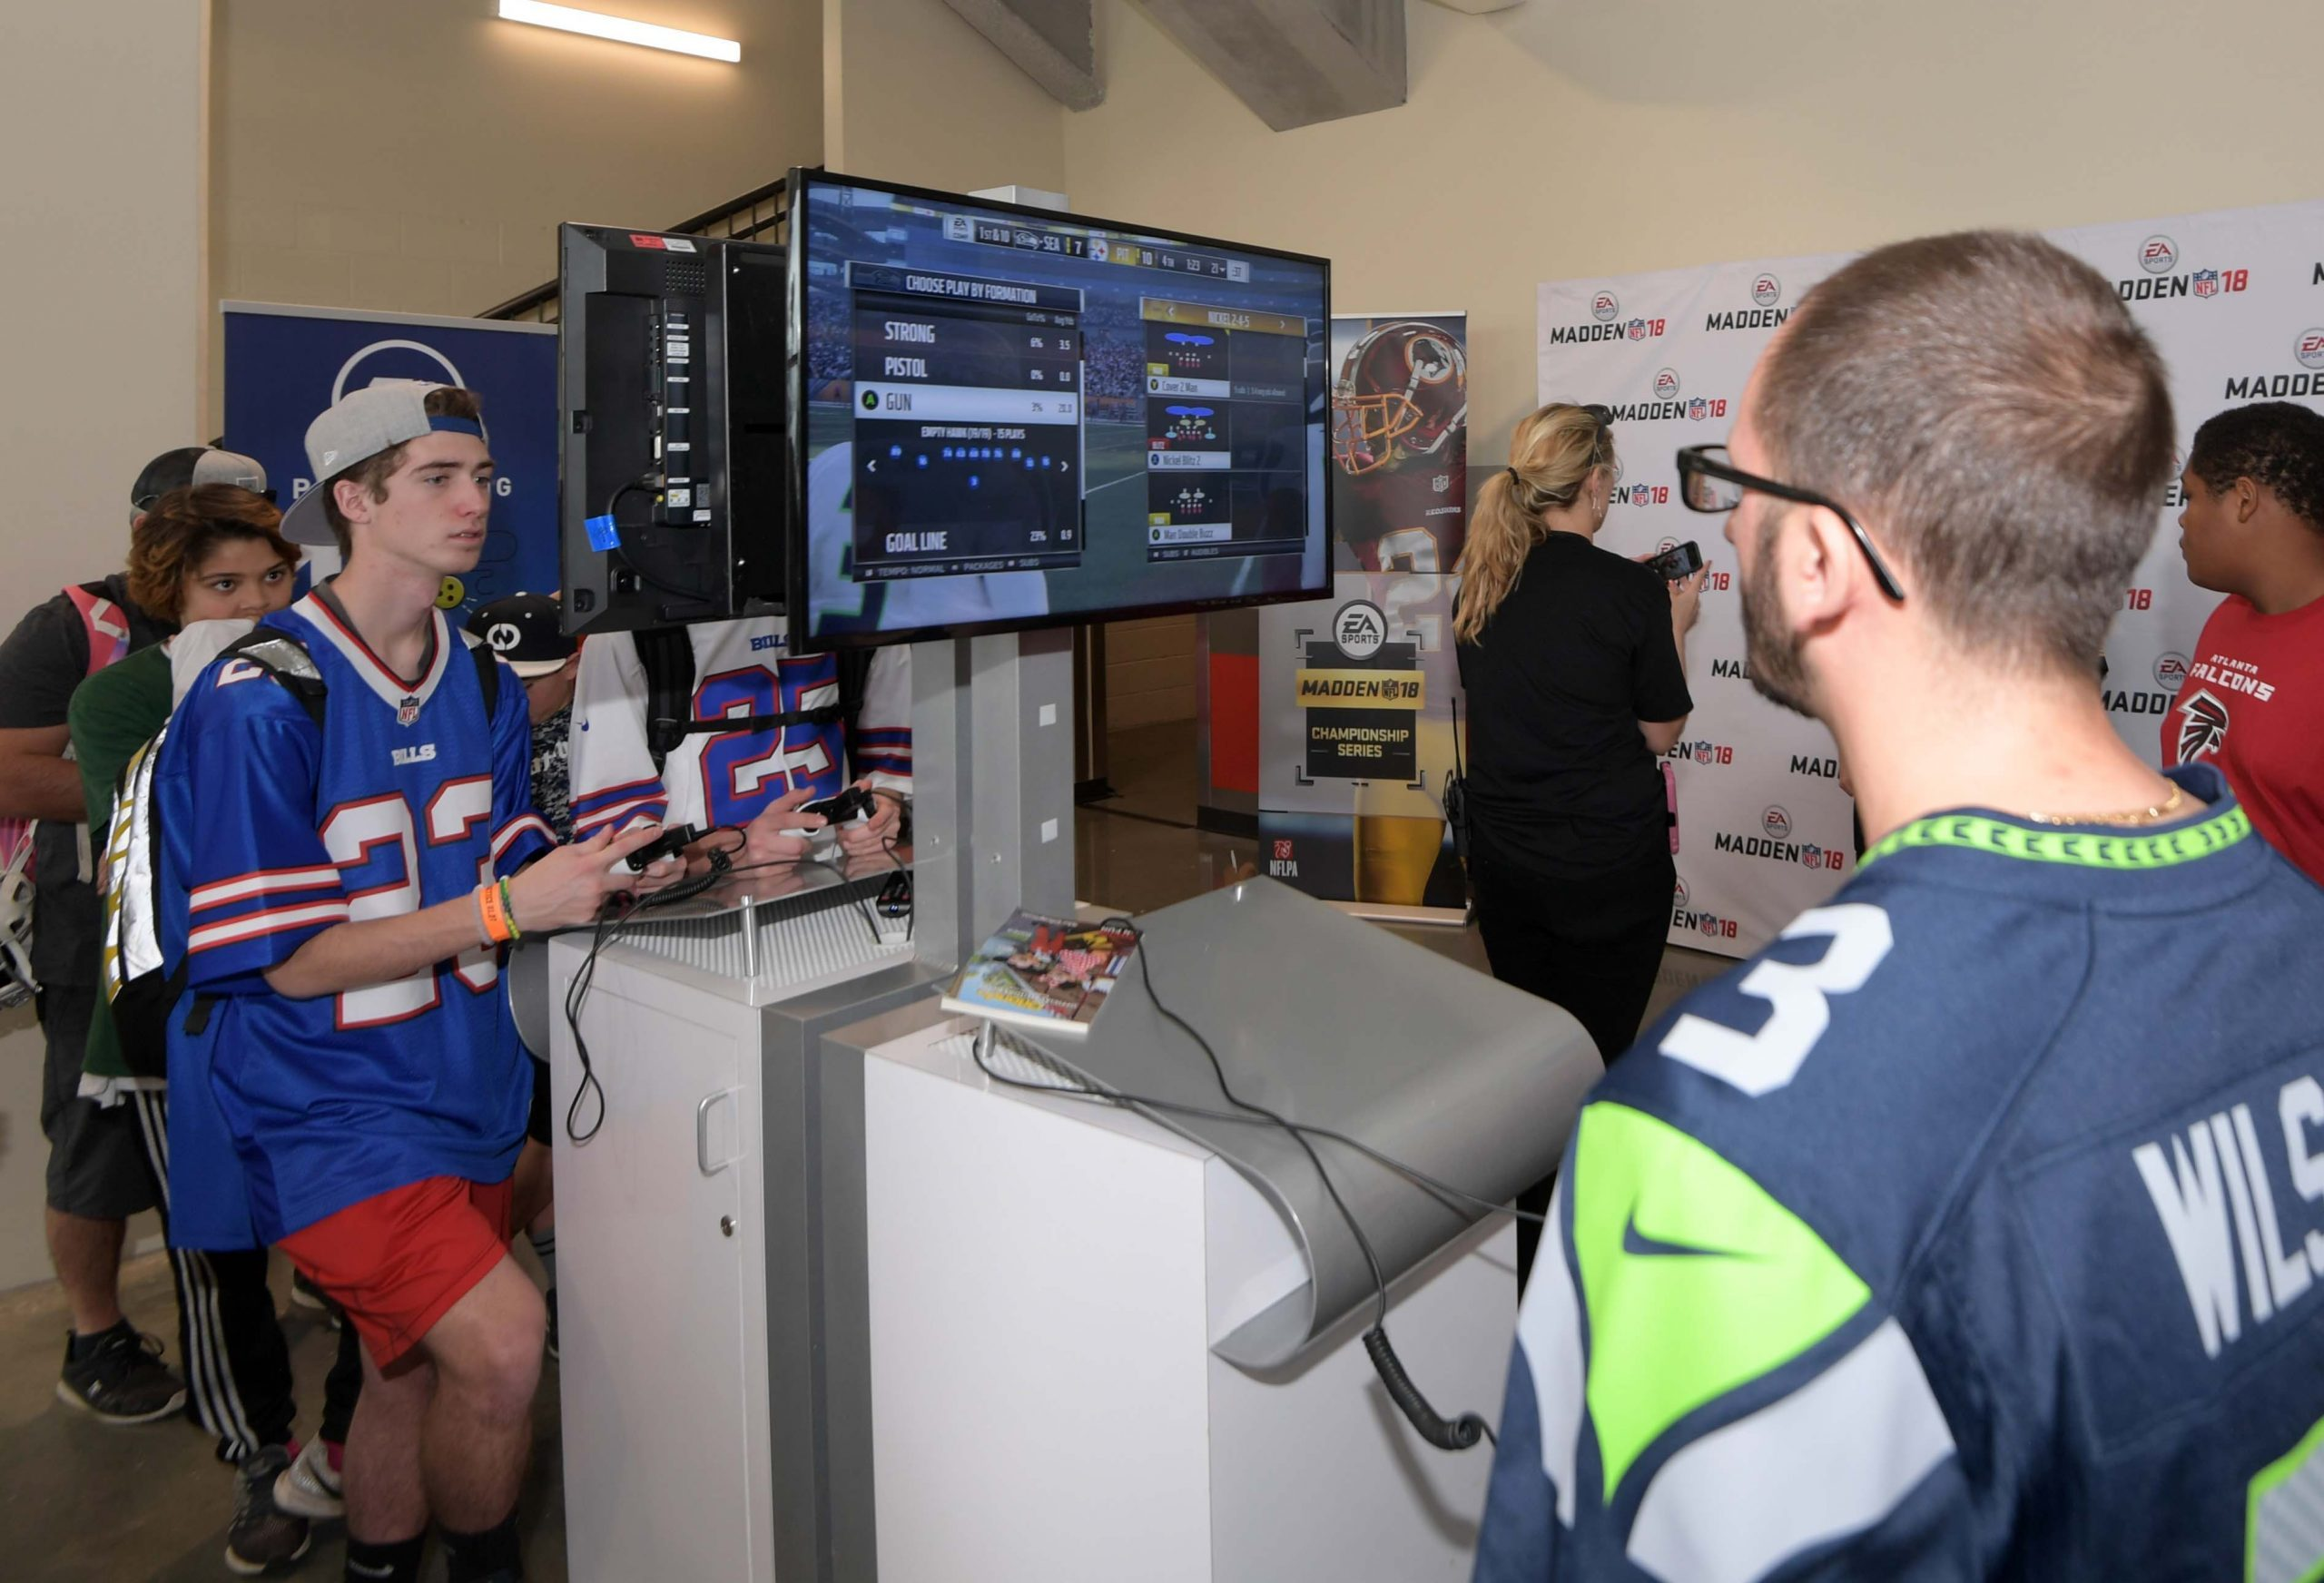 End in Sight for Madden's Stranglehold on NFL Gaming